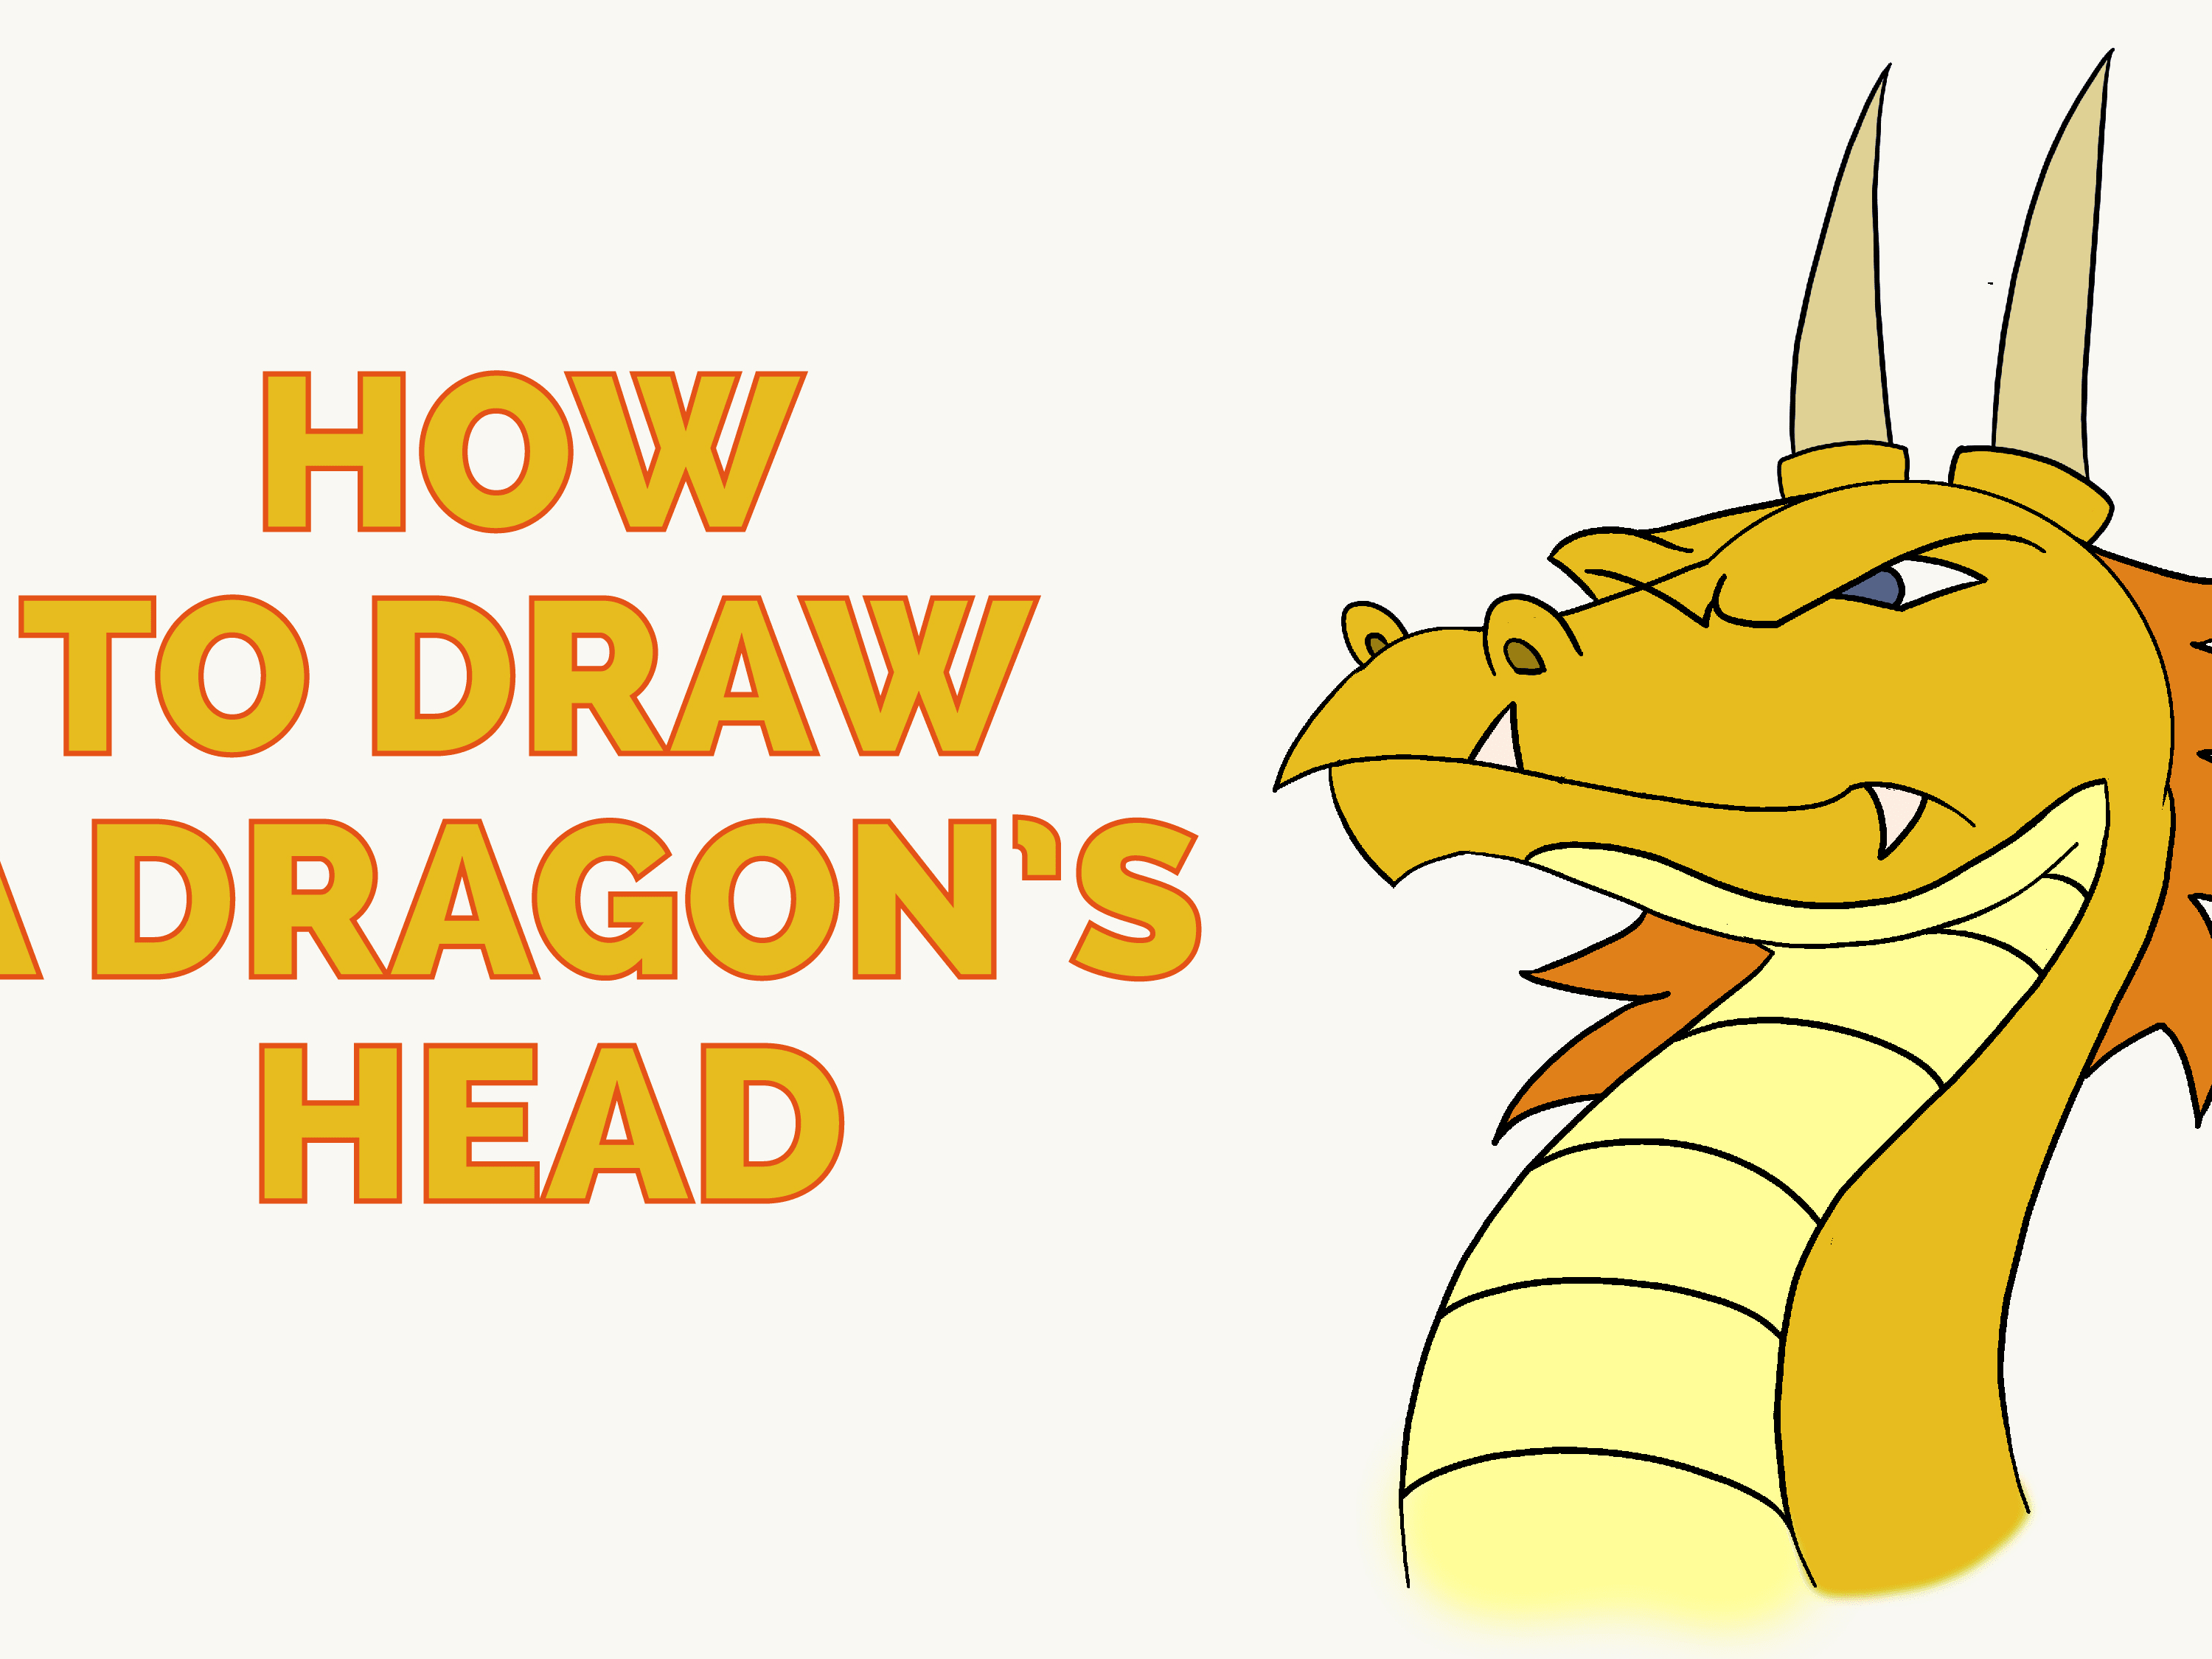 Buy Drawings Easy of dragon heads picture trends